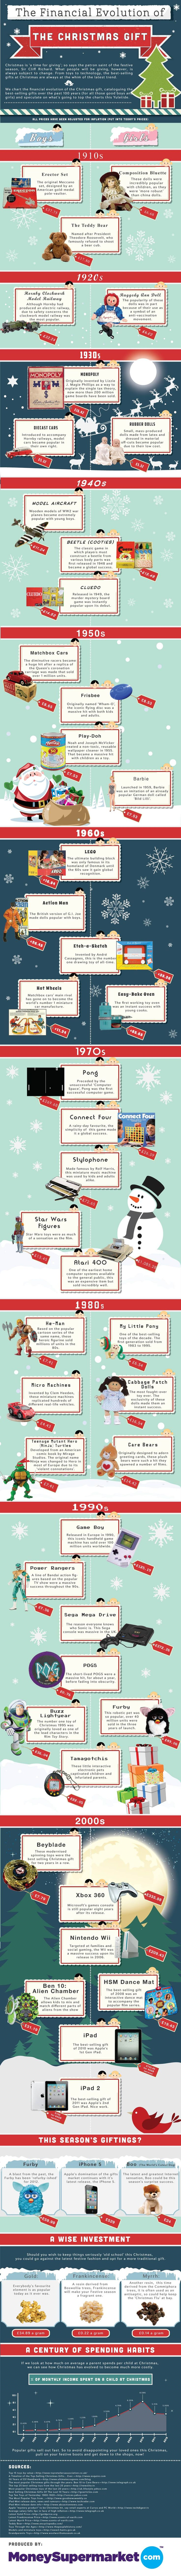 Infographic: The Financial Evolution of the Christmas Gift «